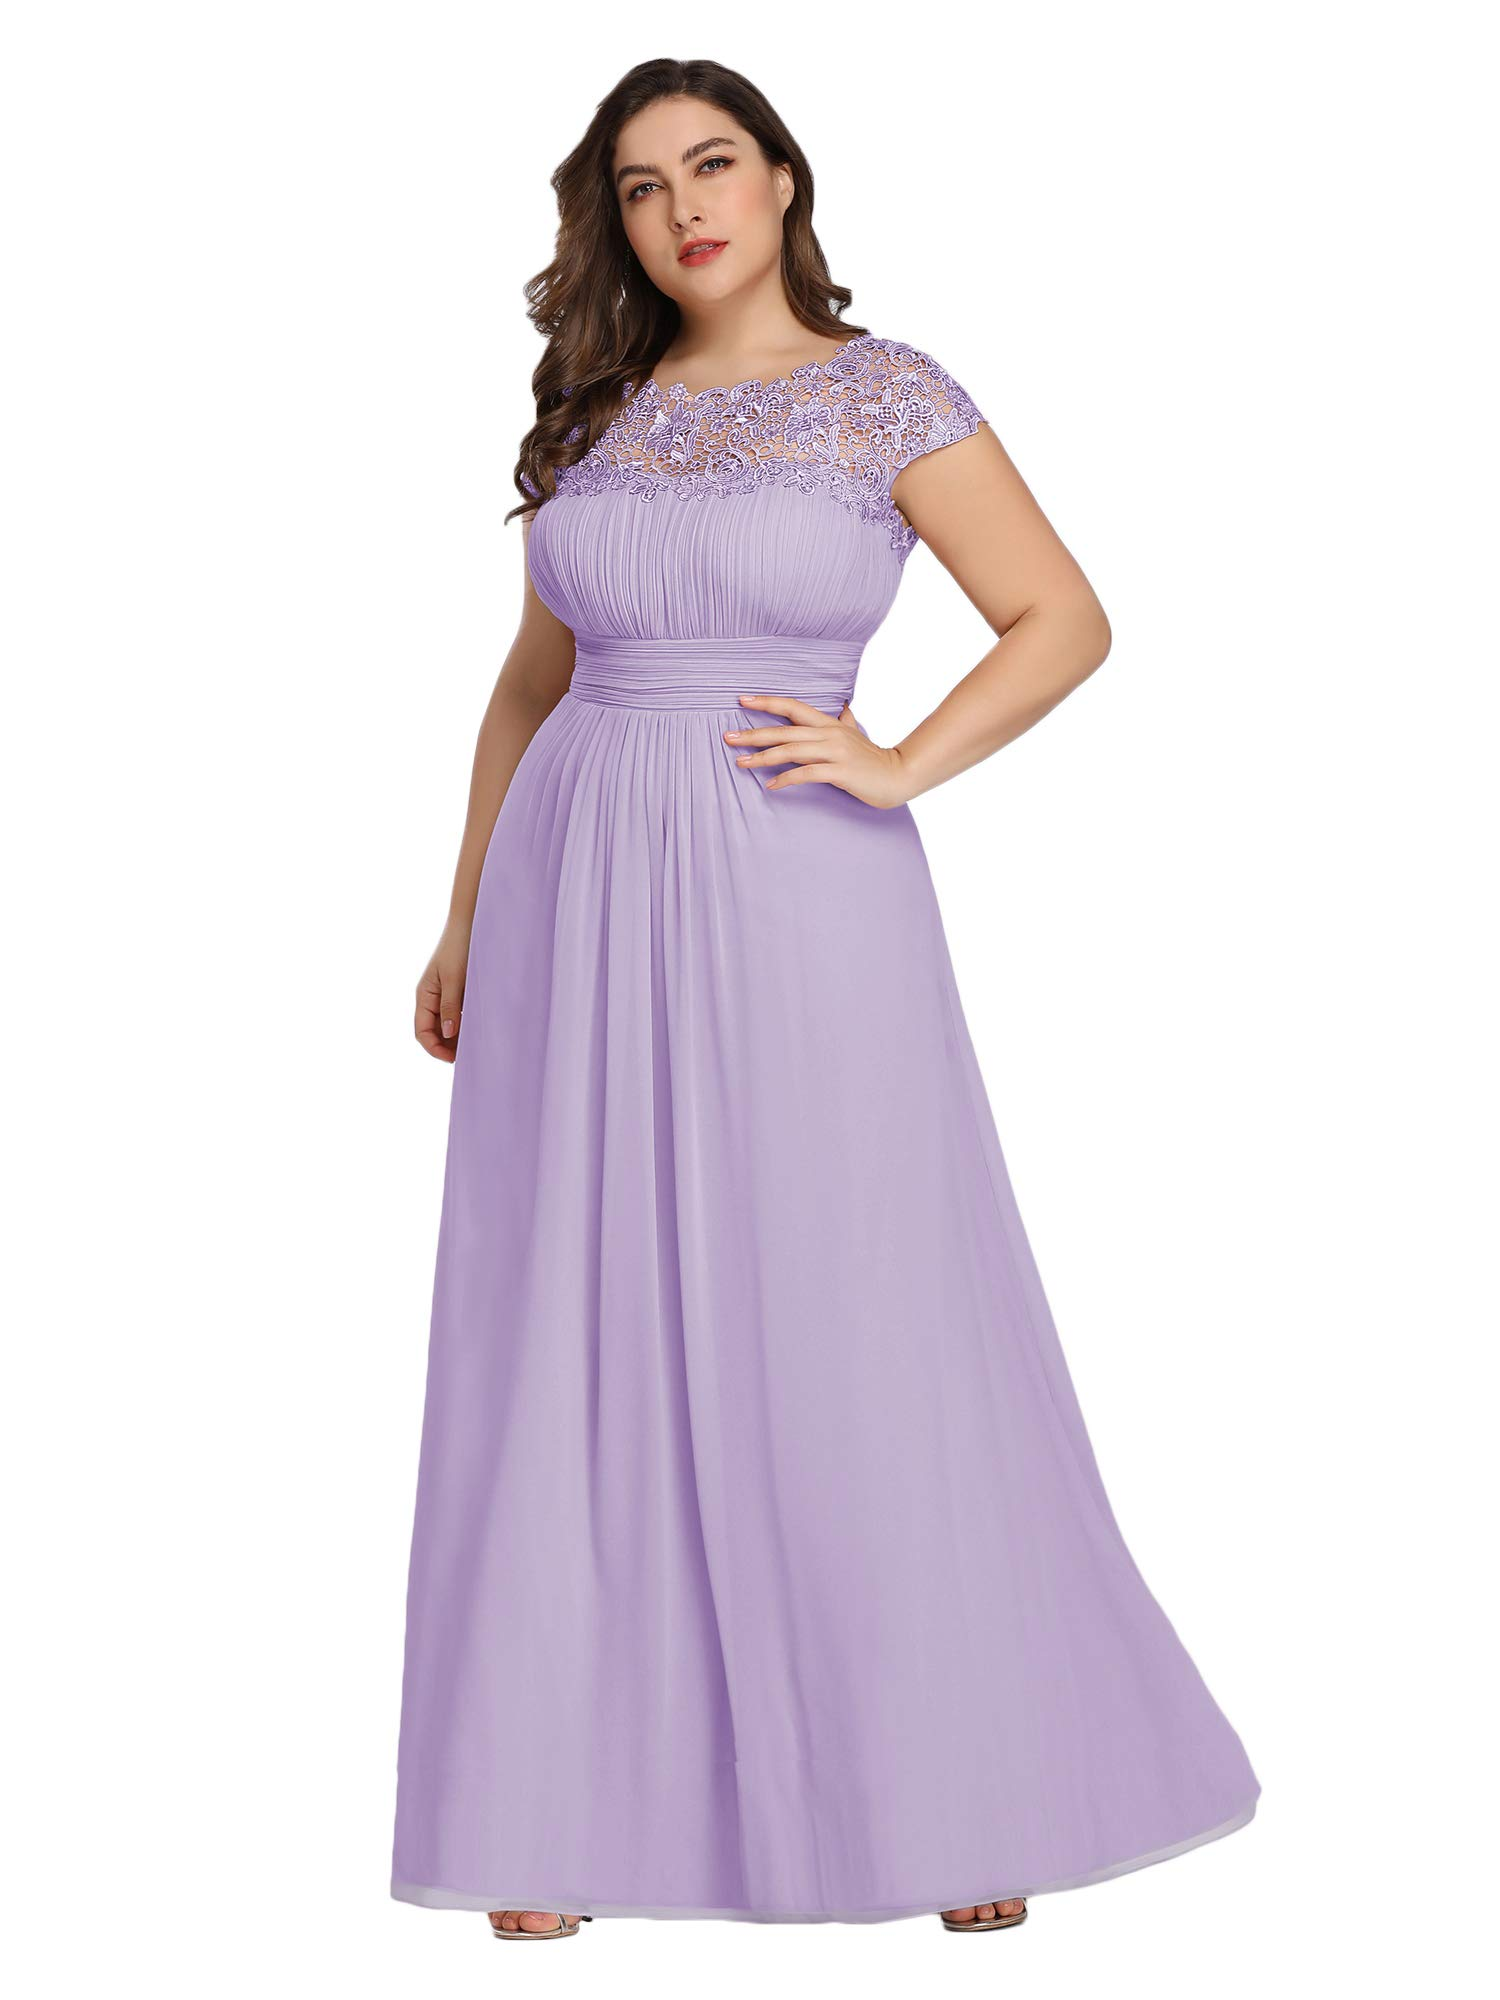 Alisapan Womens Elegant Plus Size Evening Bridesmaid Wedding Dresses for  Guests Lavender US 20